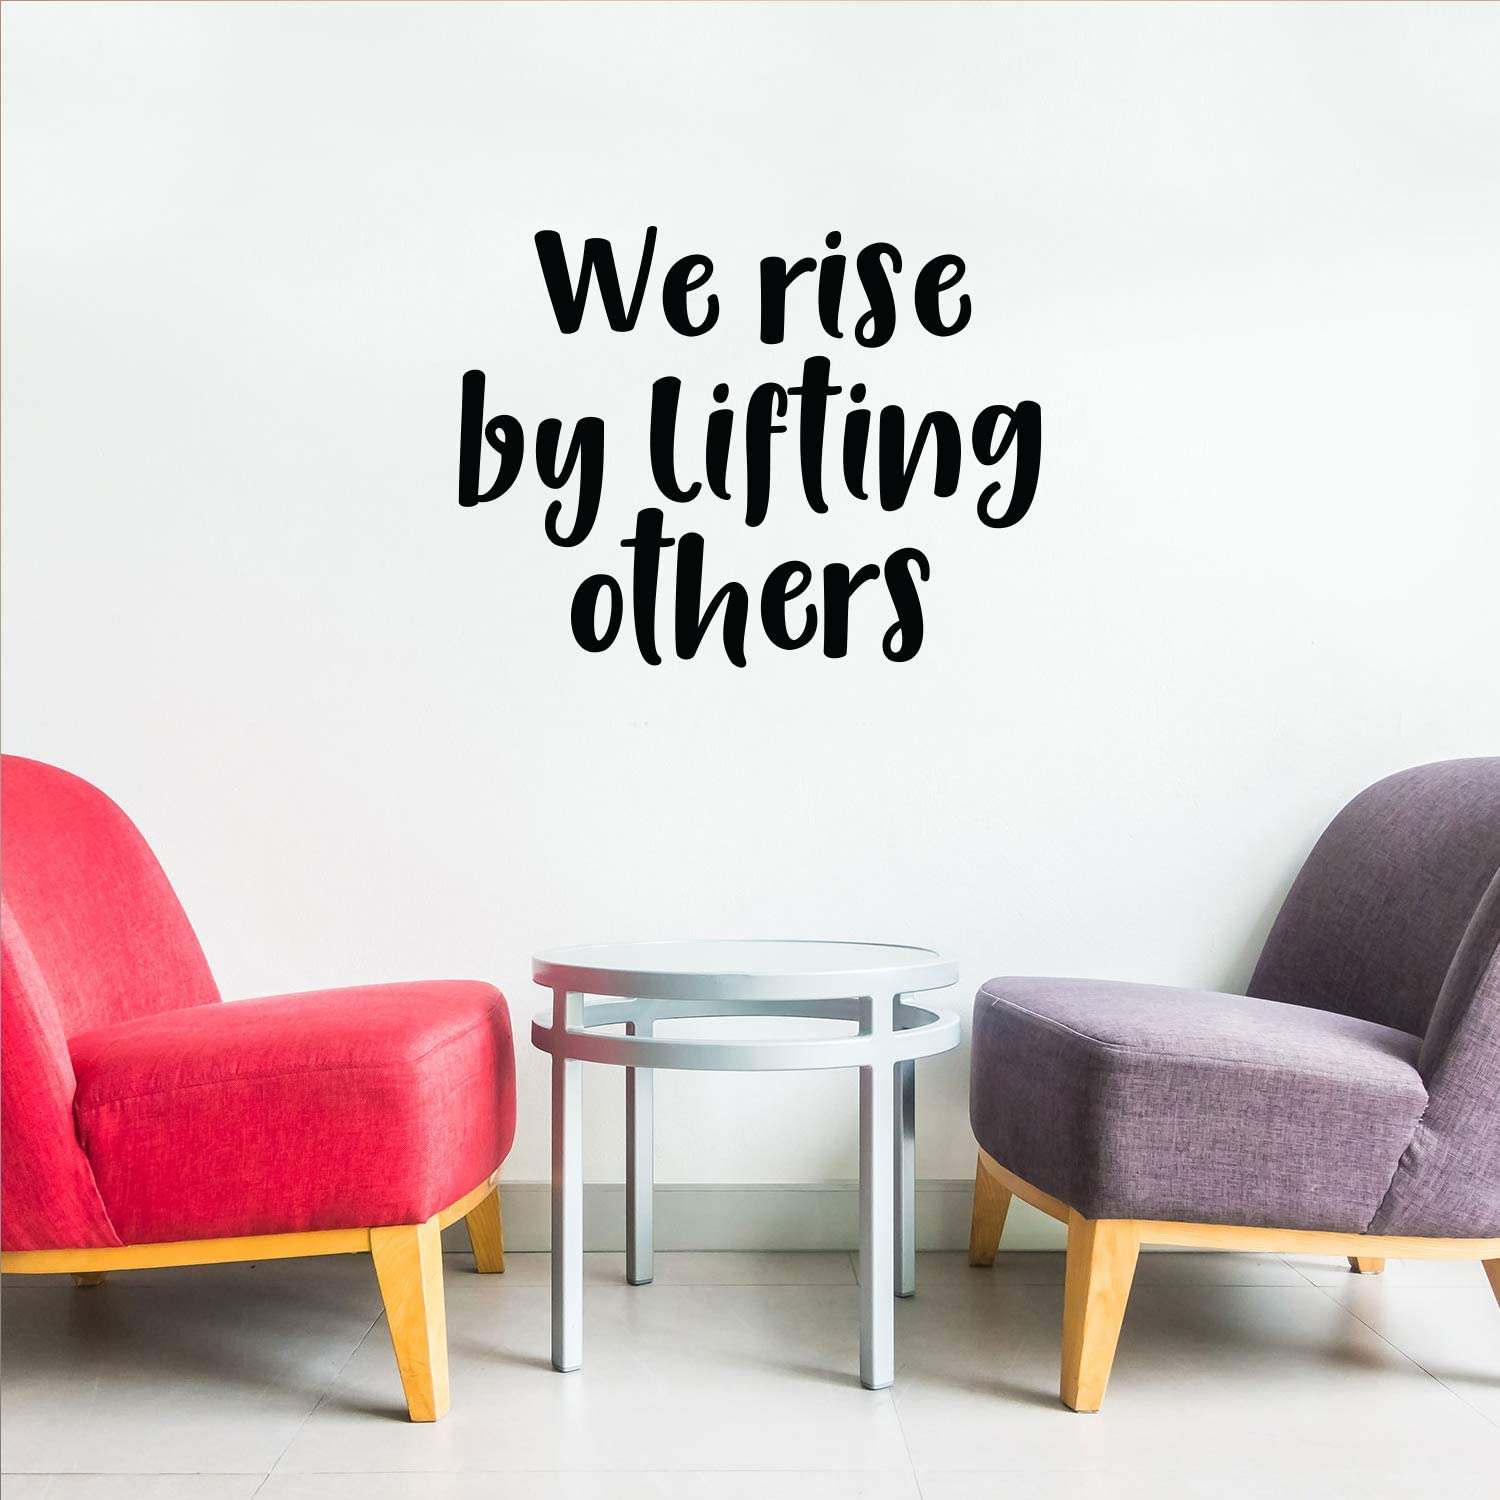 "Vinyl Wall Art Decal - We Rise by Lifting Others - 23"" x 30"" - Good Vibes Quotes - Positive Business Workplace Bedroom Decoration - Motivational Wall Home Office Apartment Decor Sticker"